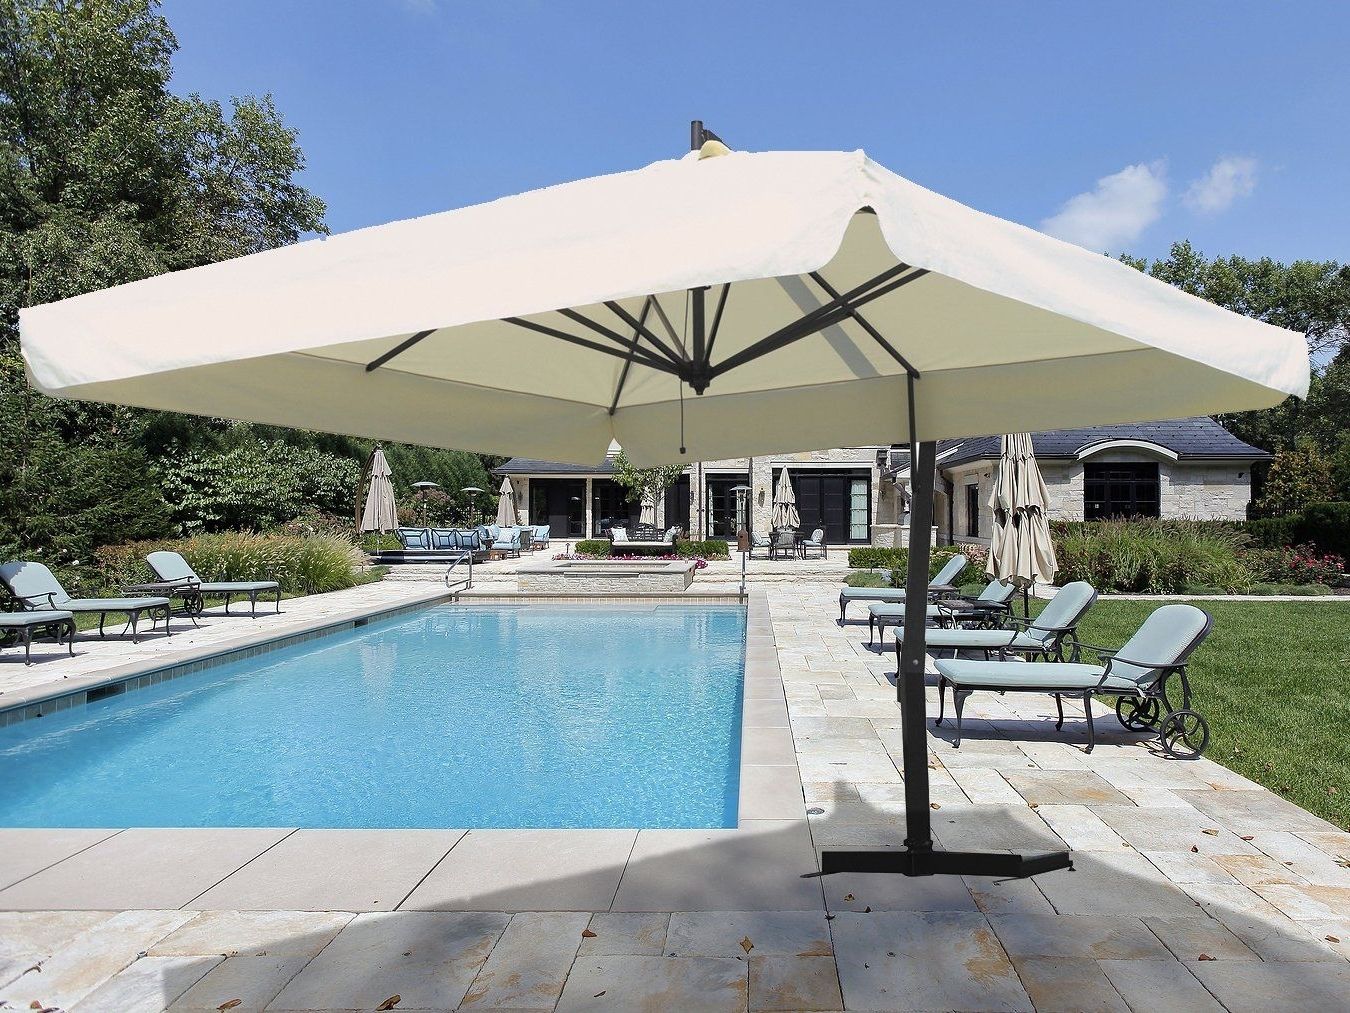 Pool With Regard To Trendy Cantilever Patio Umbrellas (View 14 of 20)